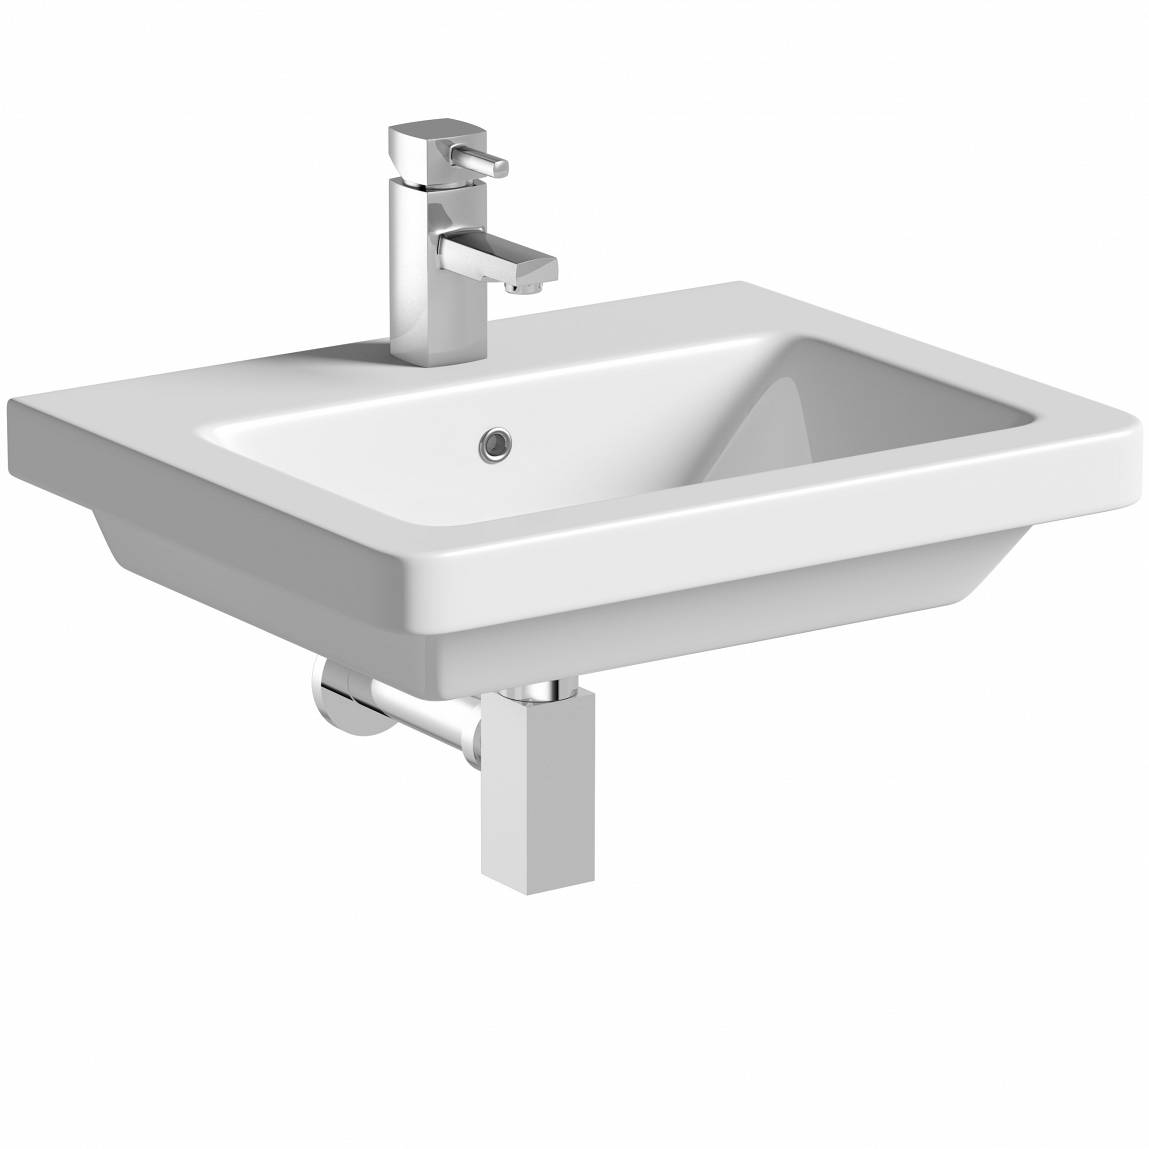 Image of Verso 1TH 550mm Wall Hung Basin